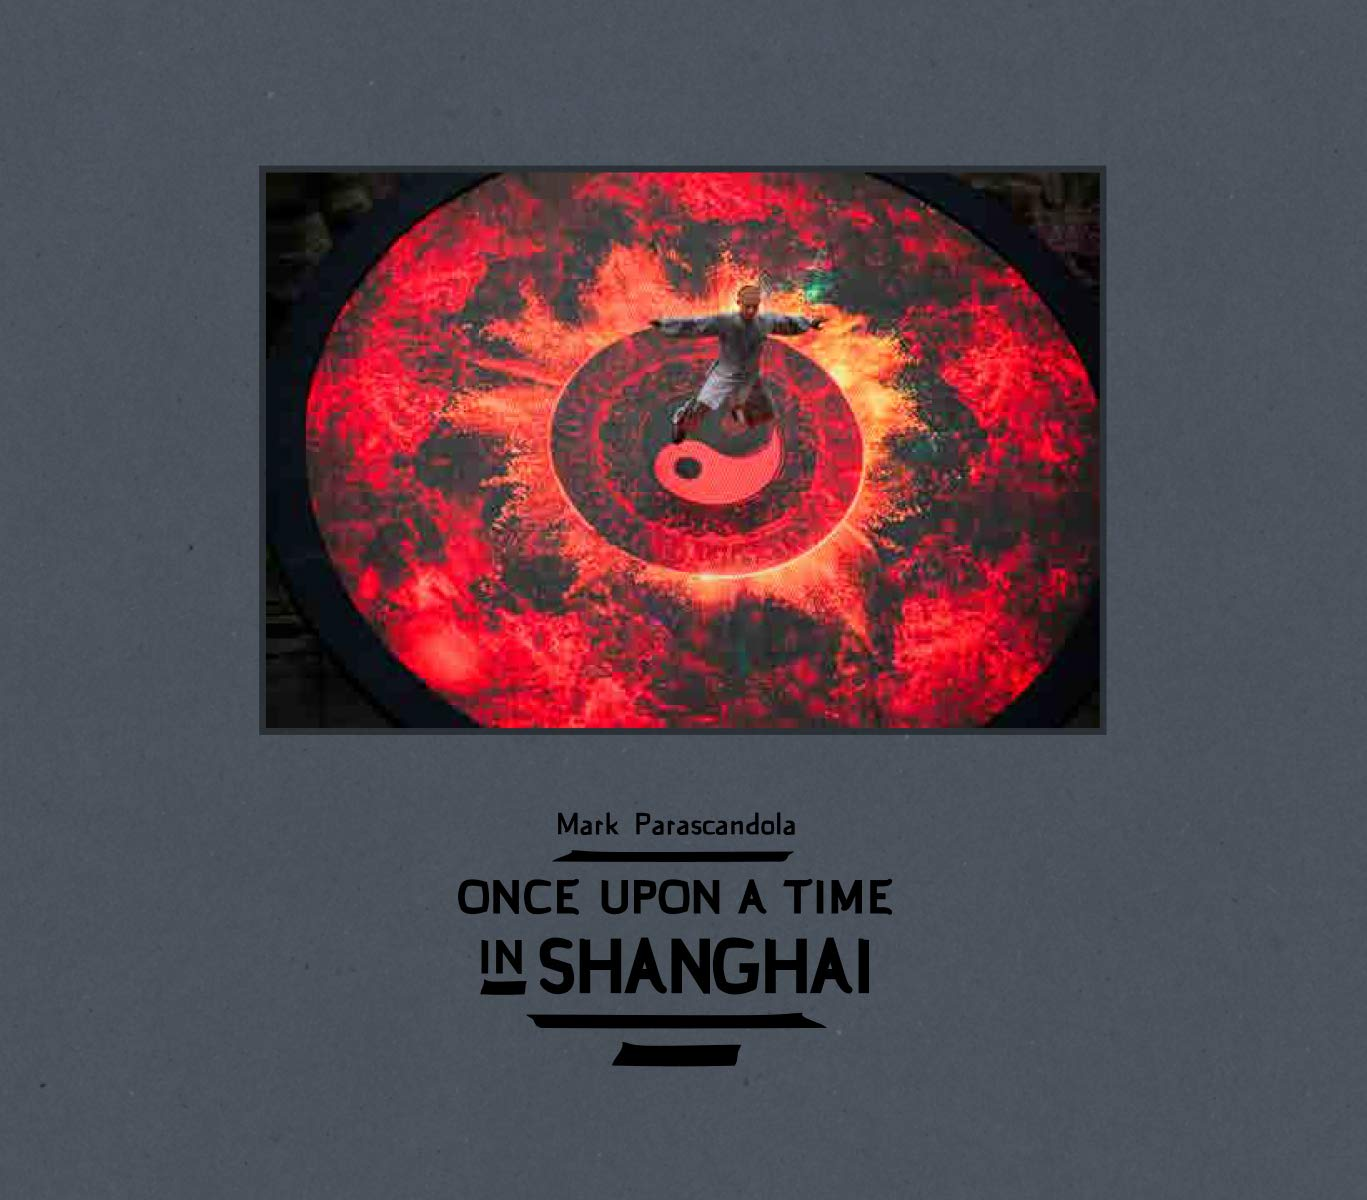 Amazon.com: Once Upon a Time in Shanghai (9781942084747 ...